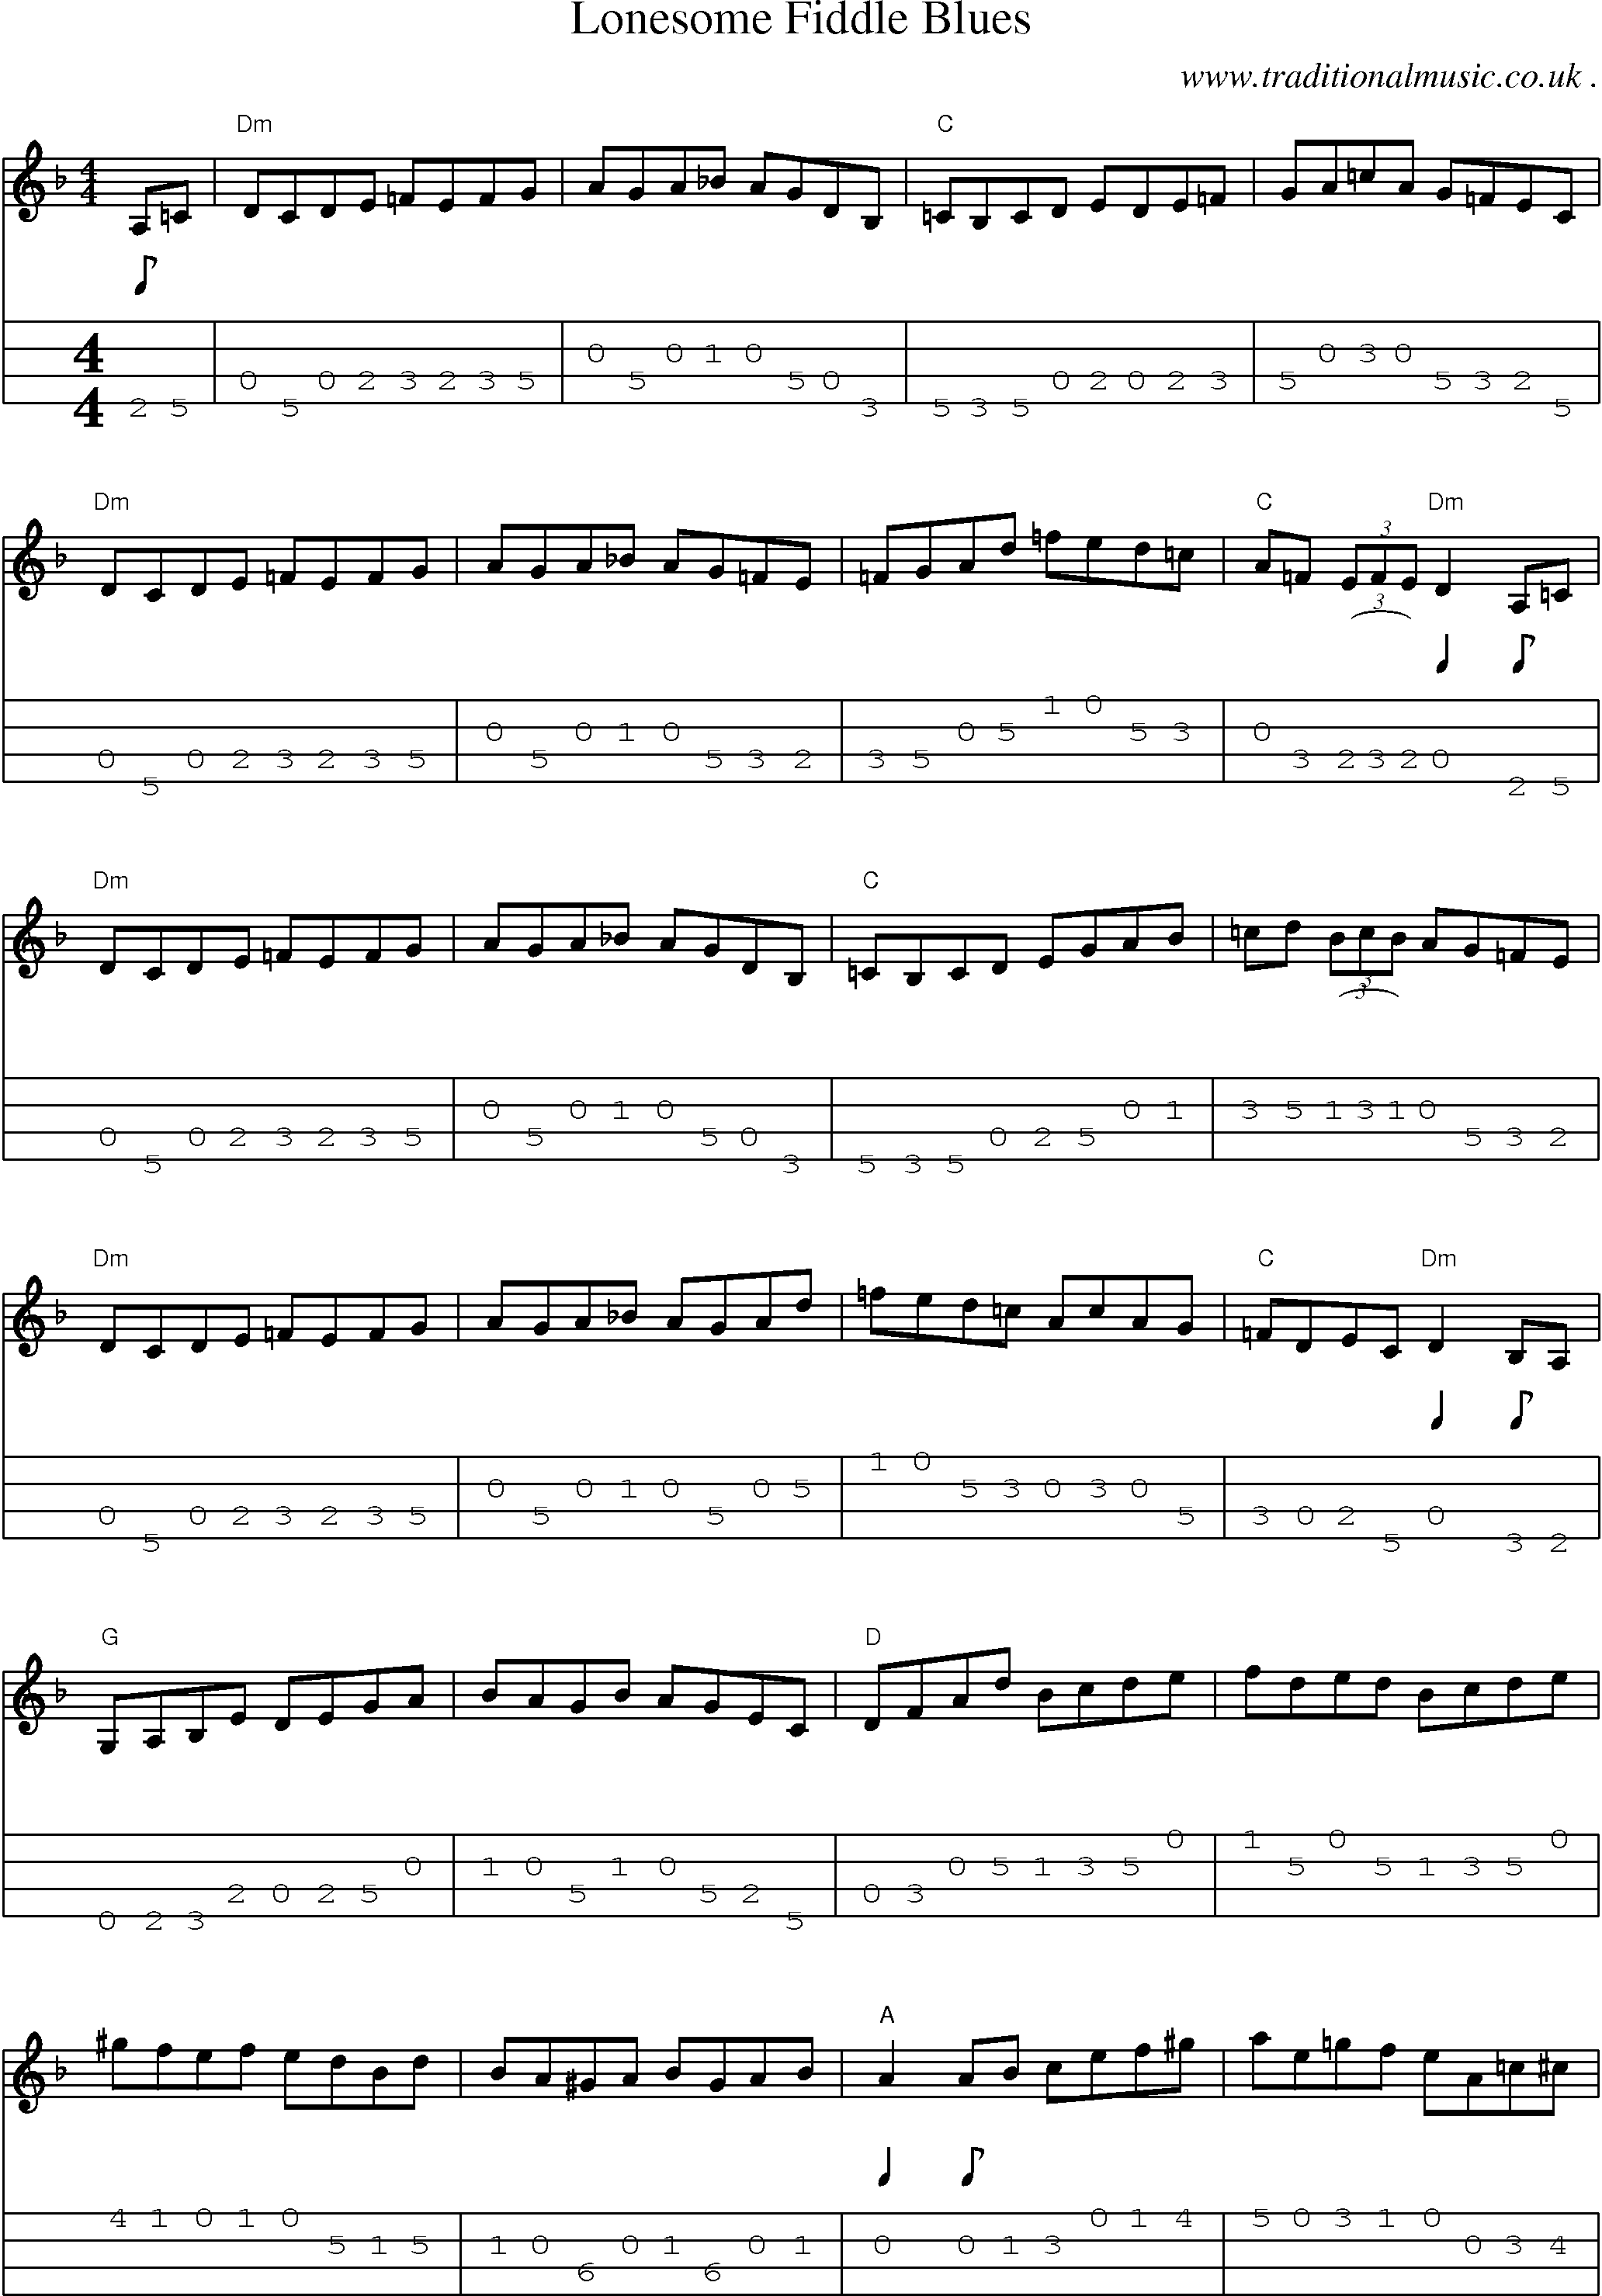 American Old Time Music Scores And Tabs For Mandolin Lonesome